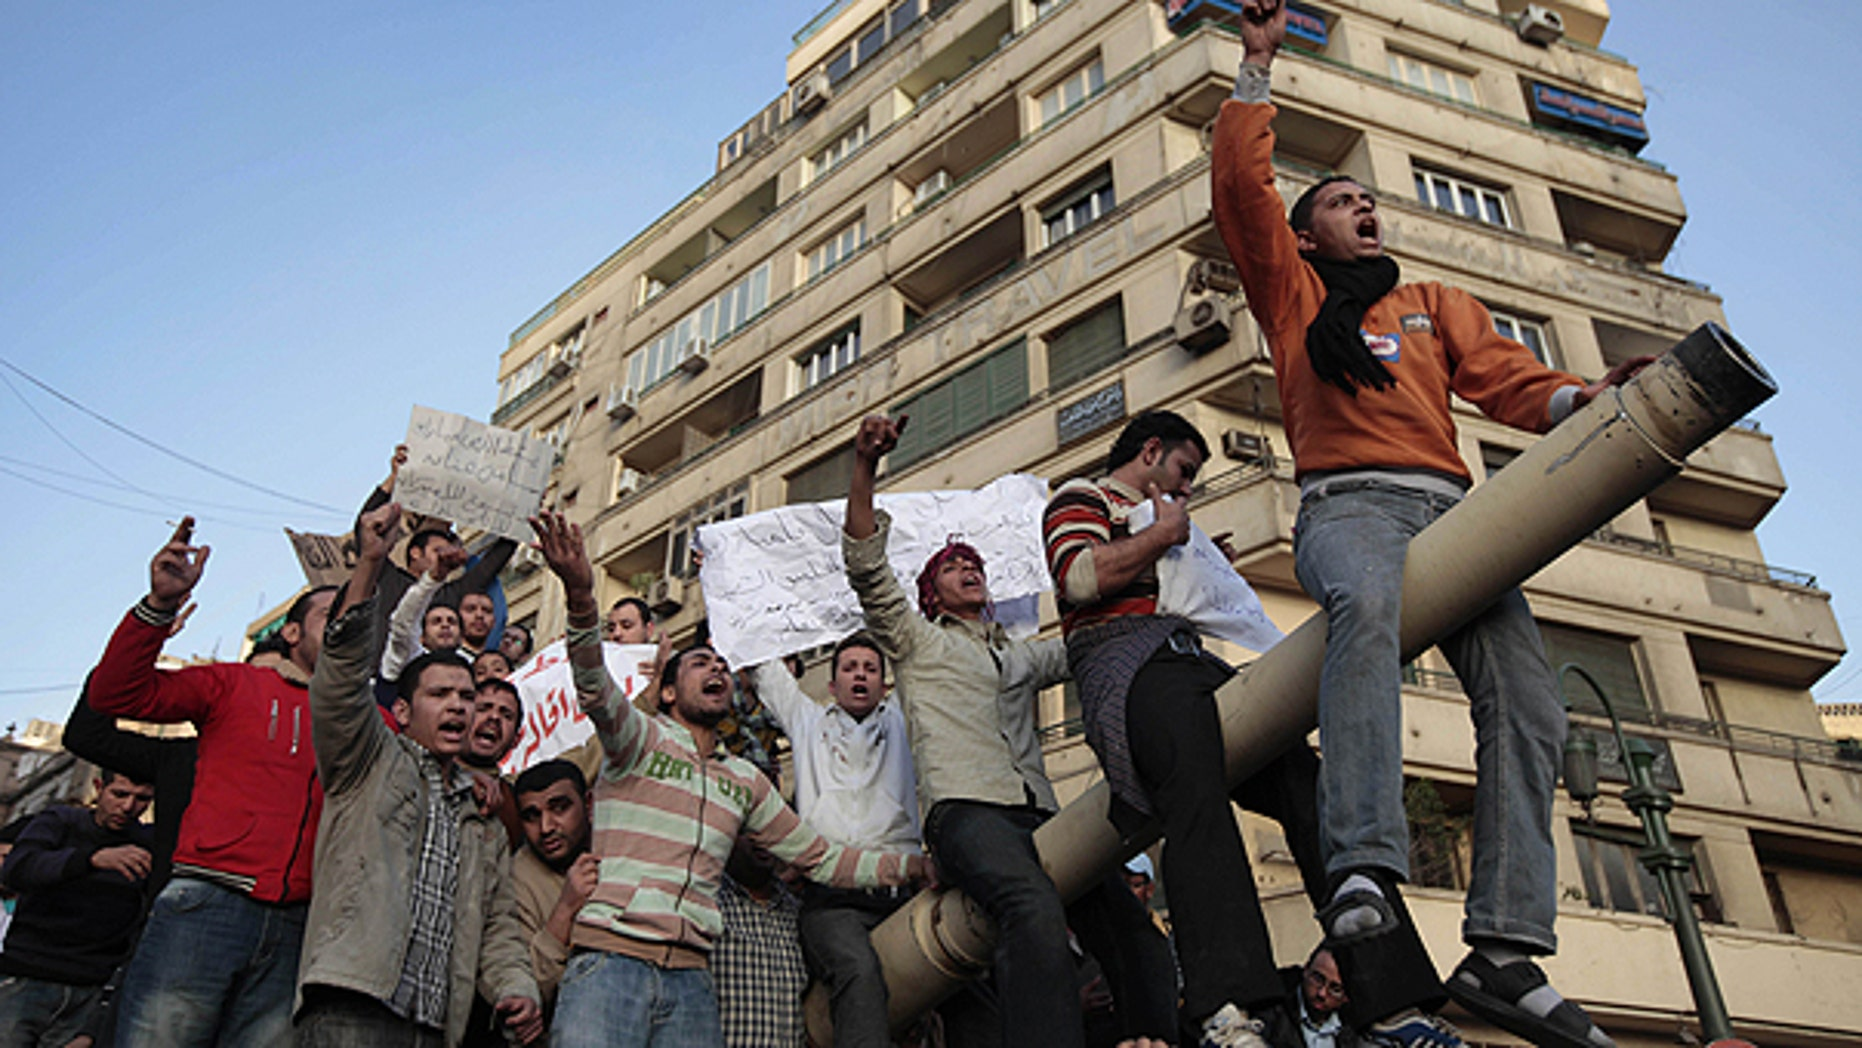 Jan. 29: Egyptian anti-government protesters chant slogans as they stand atop an Egyptian army tank during a protest in Tahrir square in Cairo, Egypt.